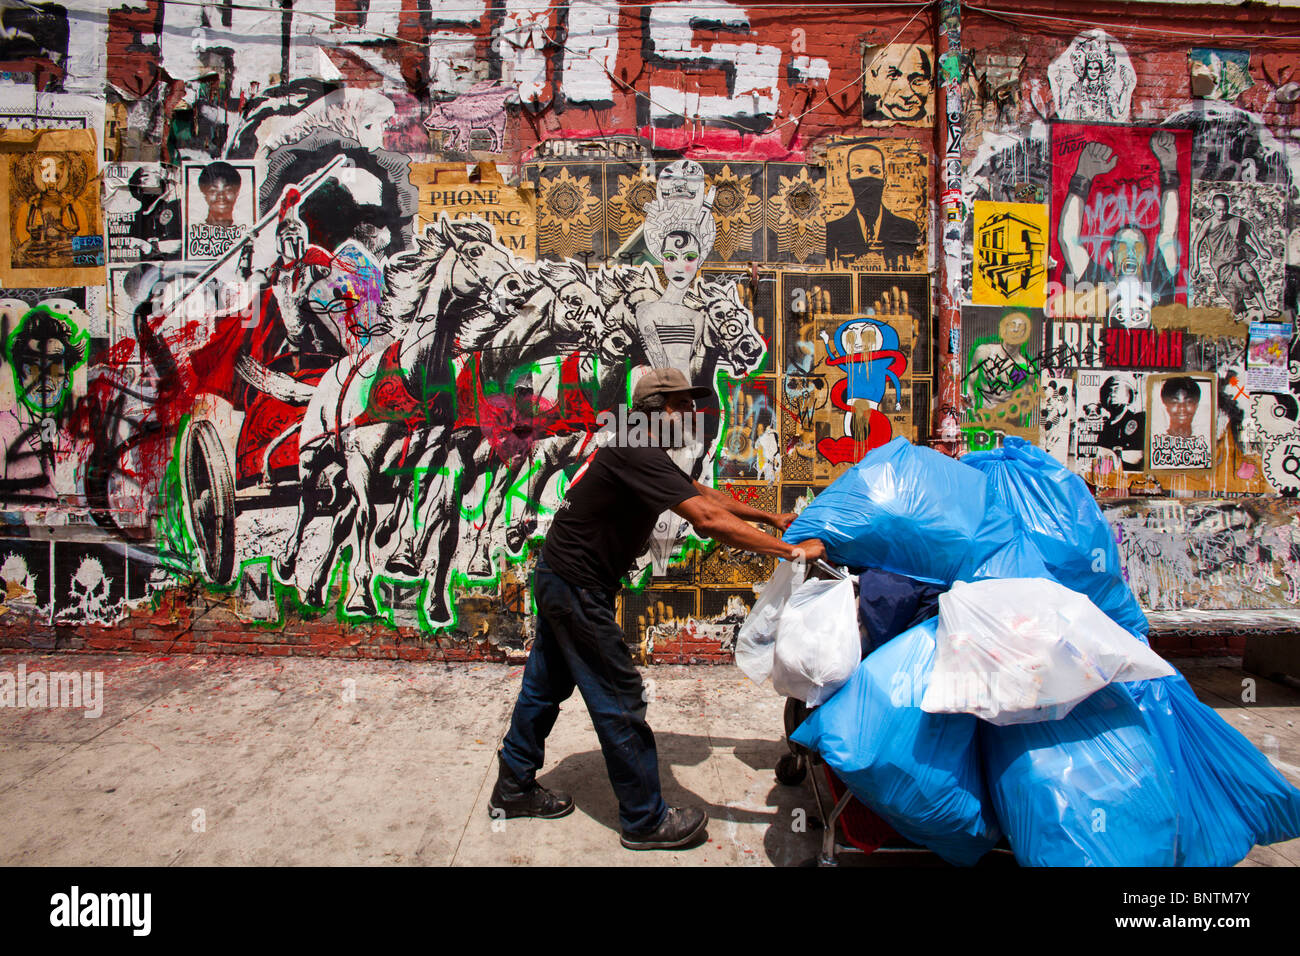 homeless (probably) man with shopping cart walks by a street art mural, Los Angeles, California, United States of - Stock Image